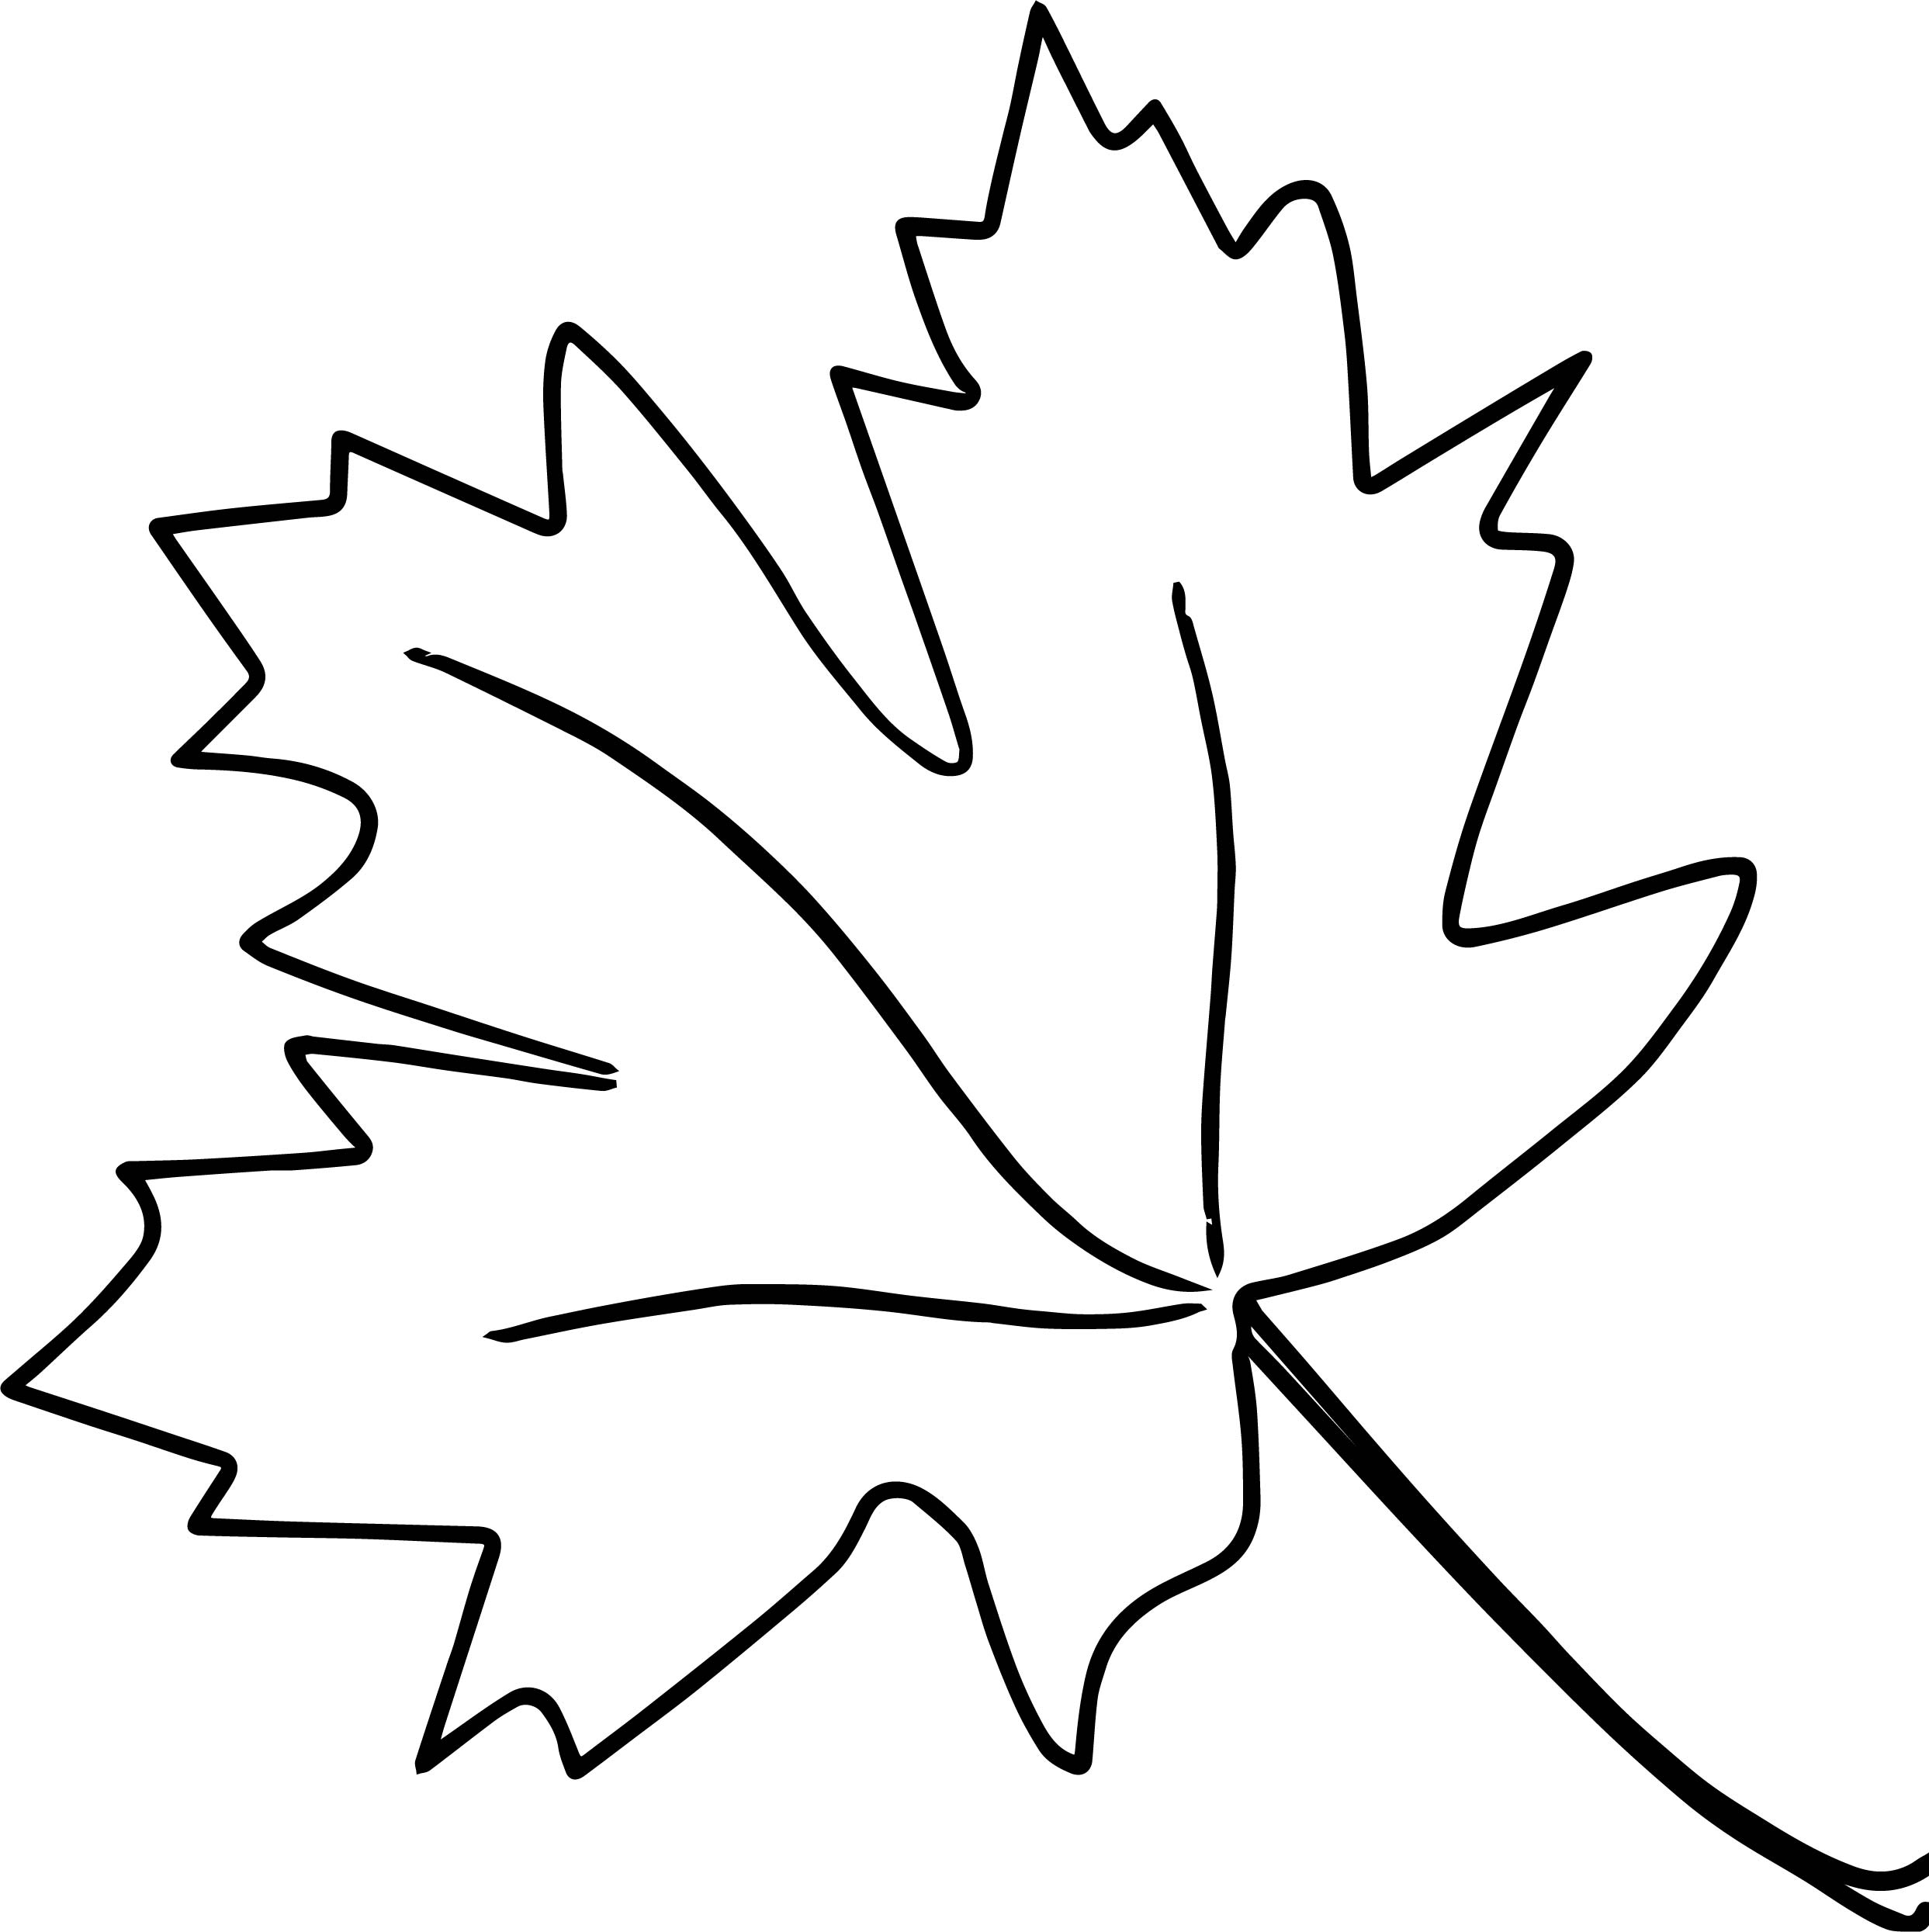 coloring page of a leaf - new autumn leaf coloring page